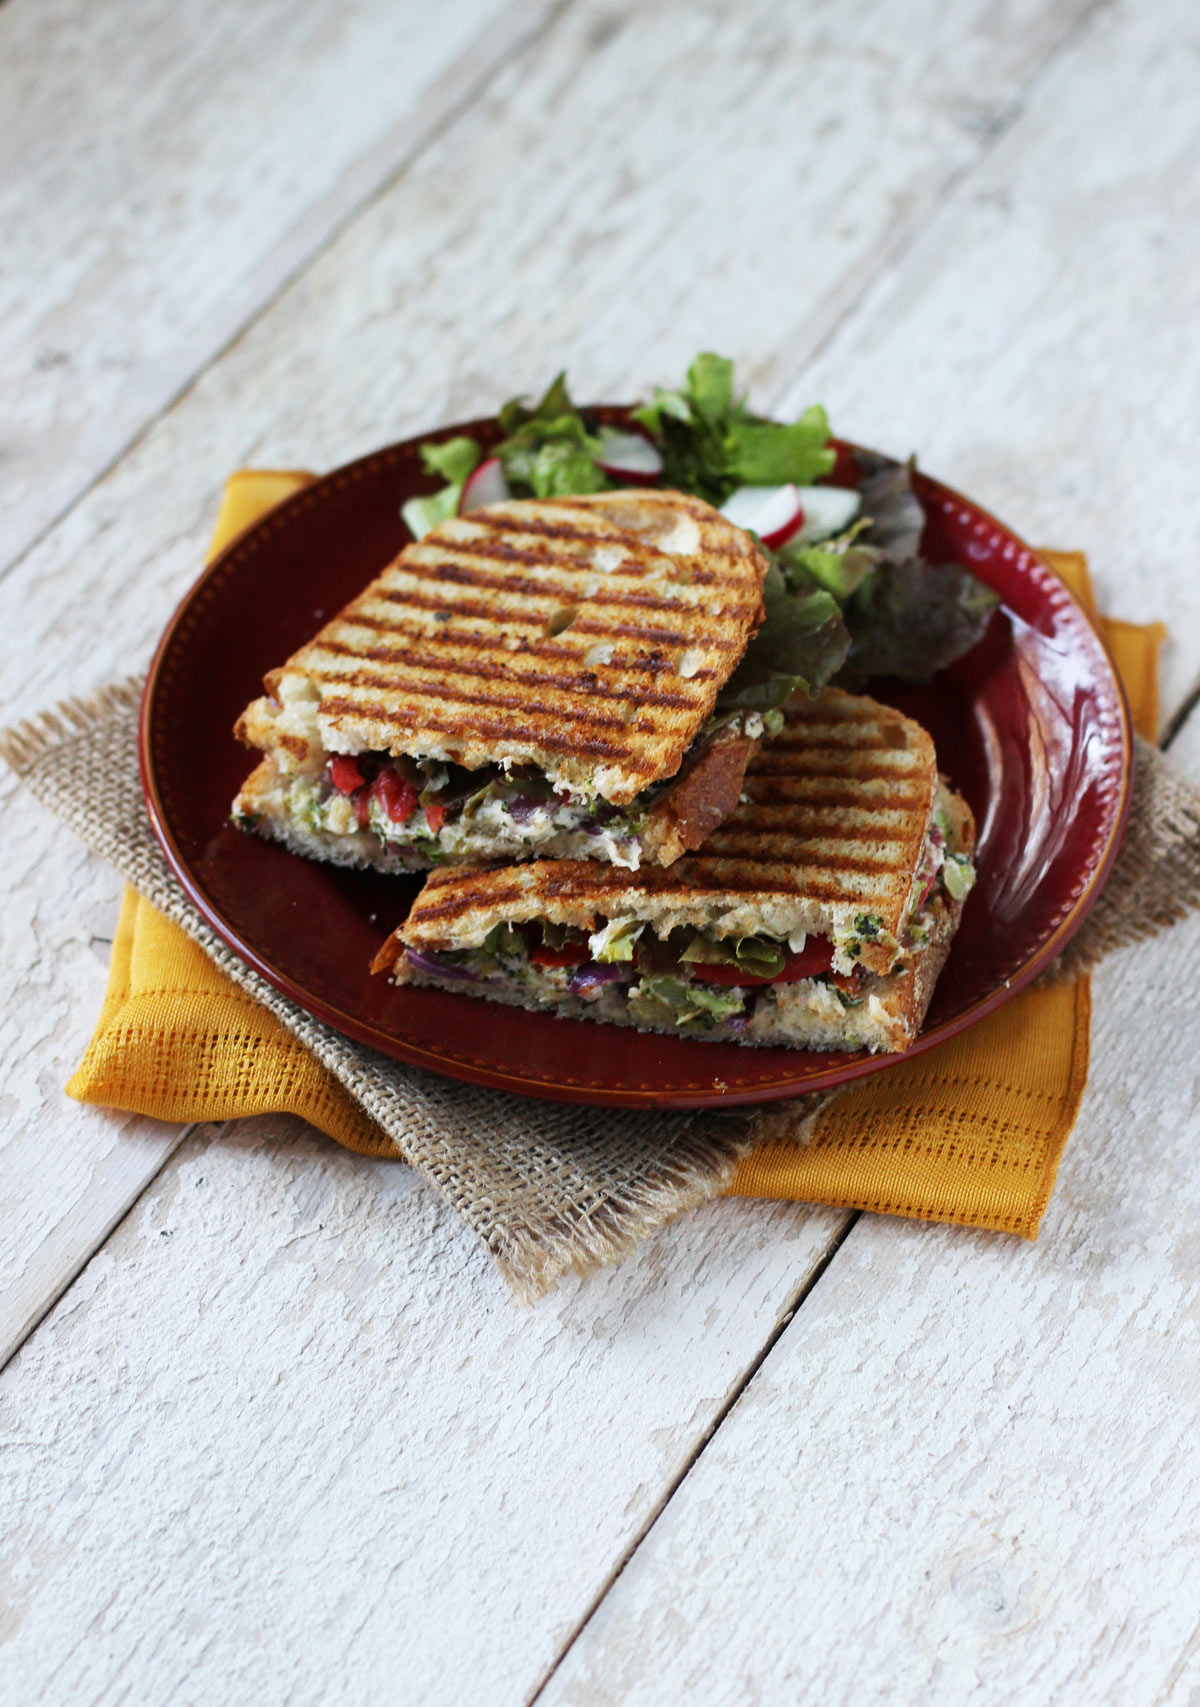 Roasted-Vegetable-&-Herbed-Goat-Cheese-Paninis-3